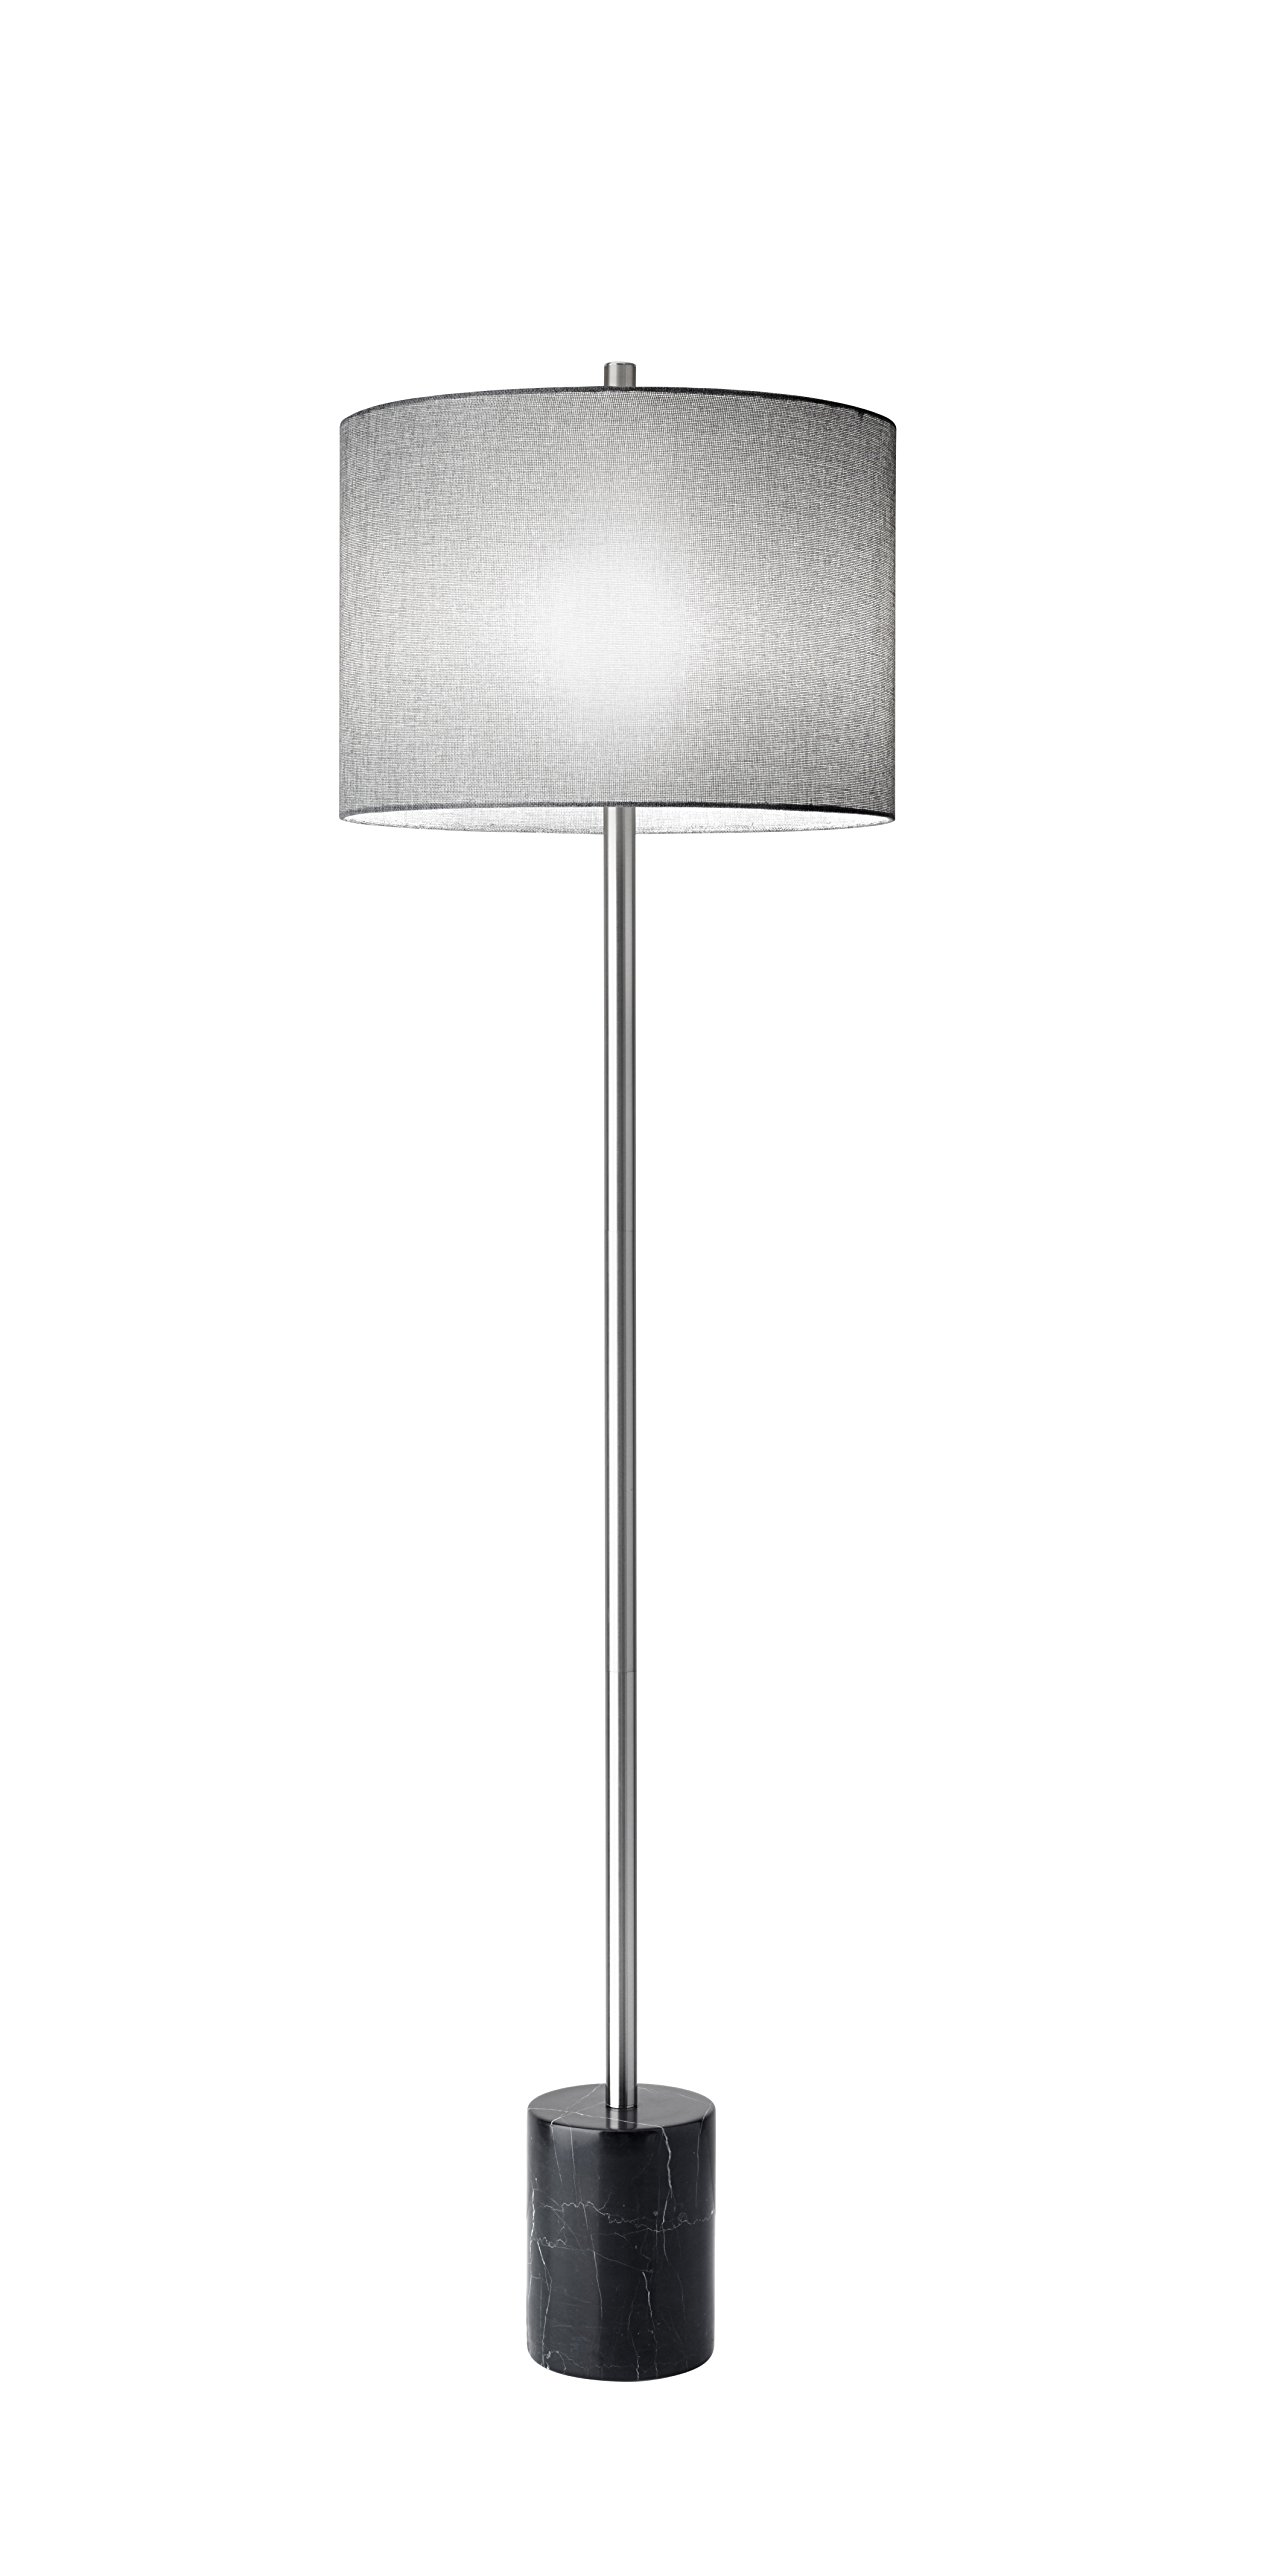 "Adesso 5281-01 Blythe 62"" Floor Lamp, Black, Smart Outlet Compatible - This lamp pairs sleek brushed steel with a chunky black marble base for a sophisticated, yet contemporary look A tweed-like grey textured shade finishes off the look 3-Way Rotary Socket Switch / Smart outlet compatible - living-room-decor, living-room, floor-lamps - 711eAUNjBvL -"